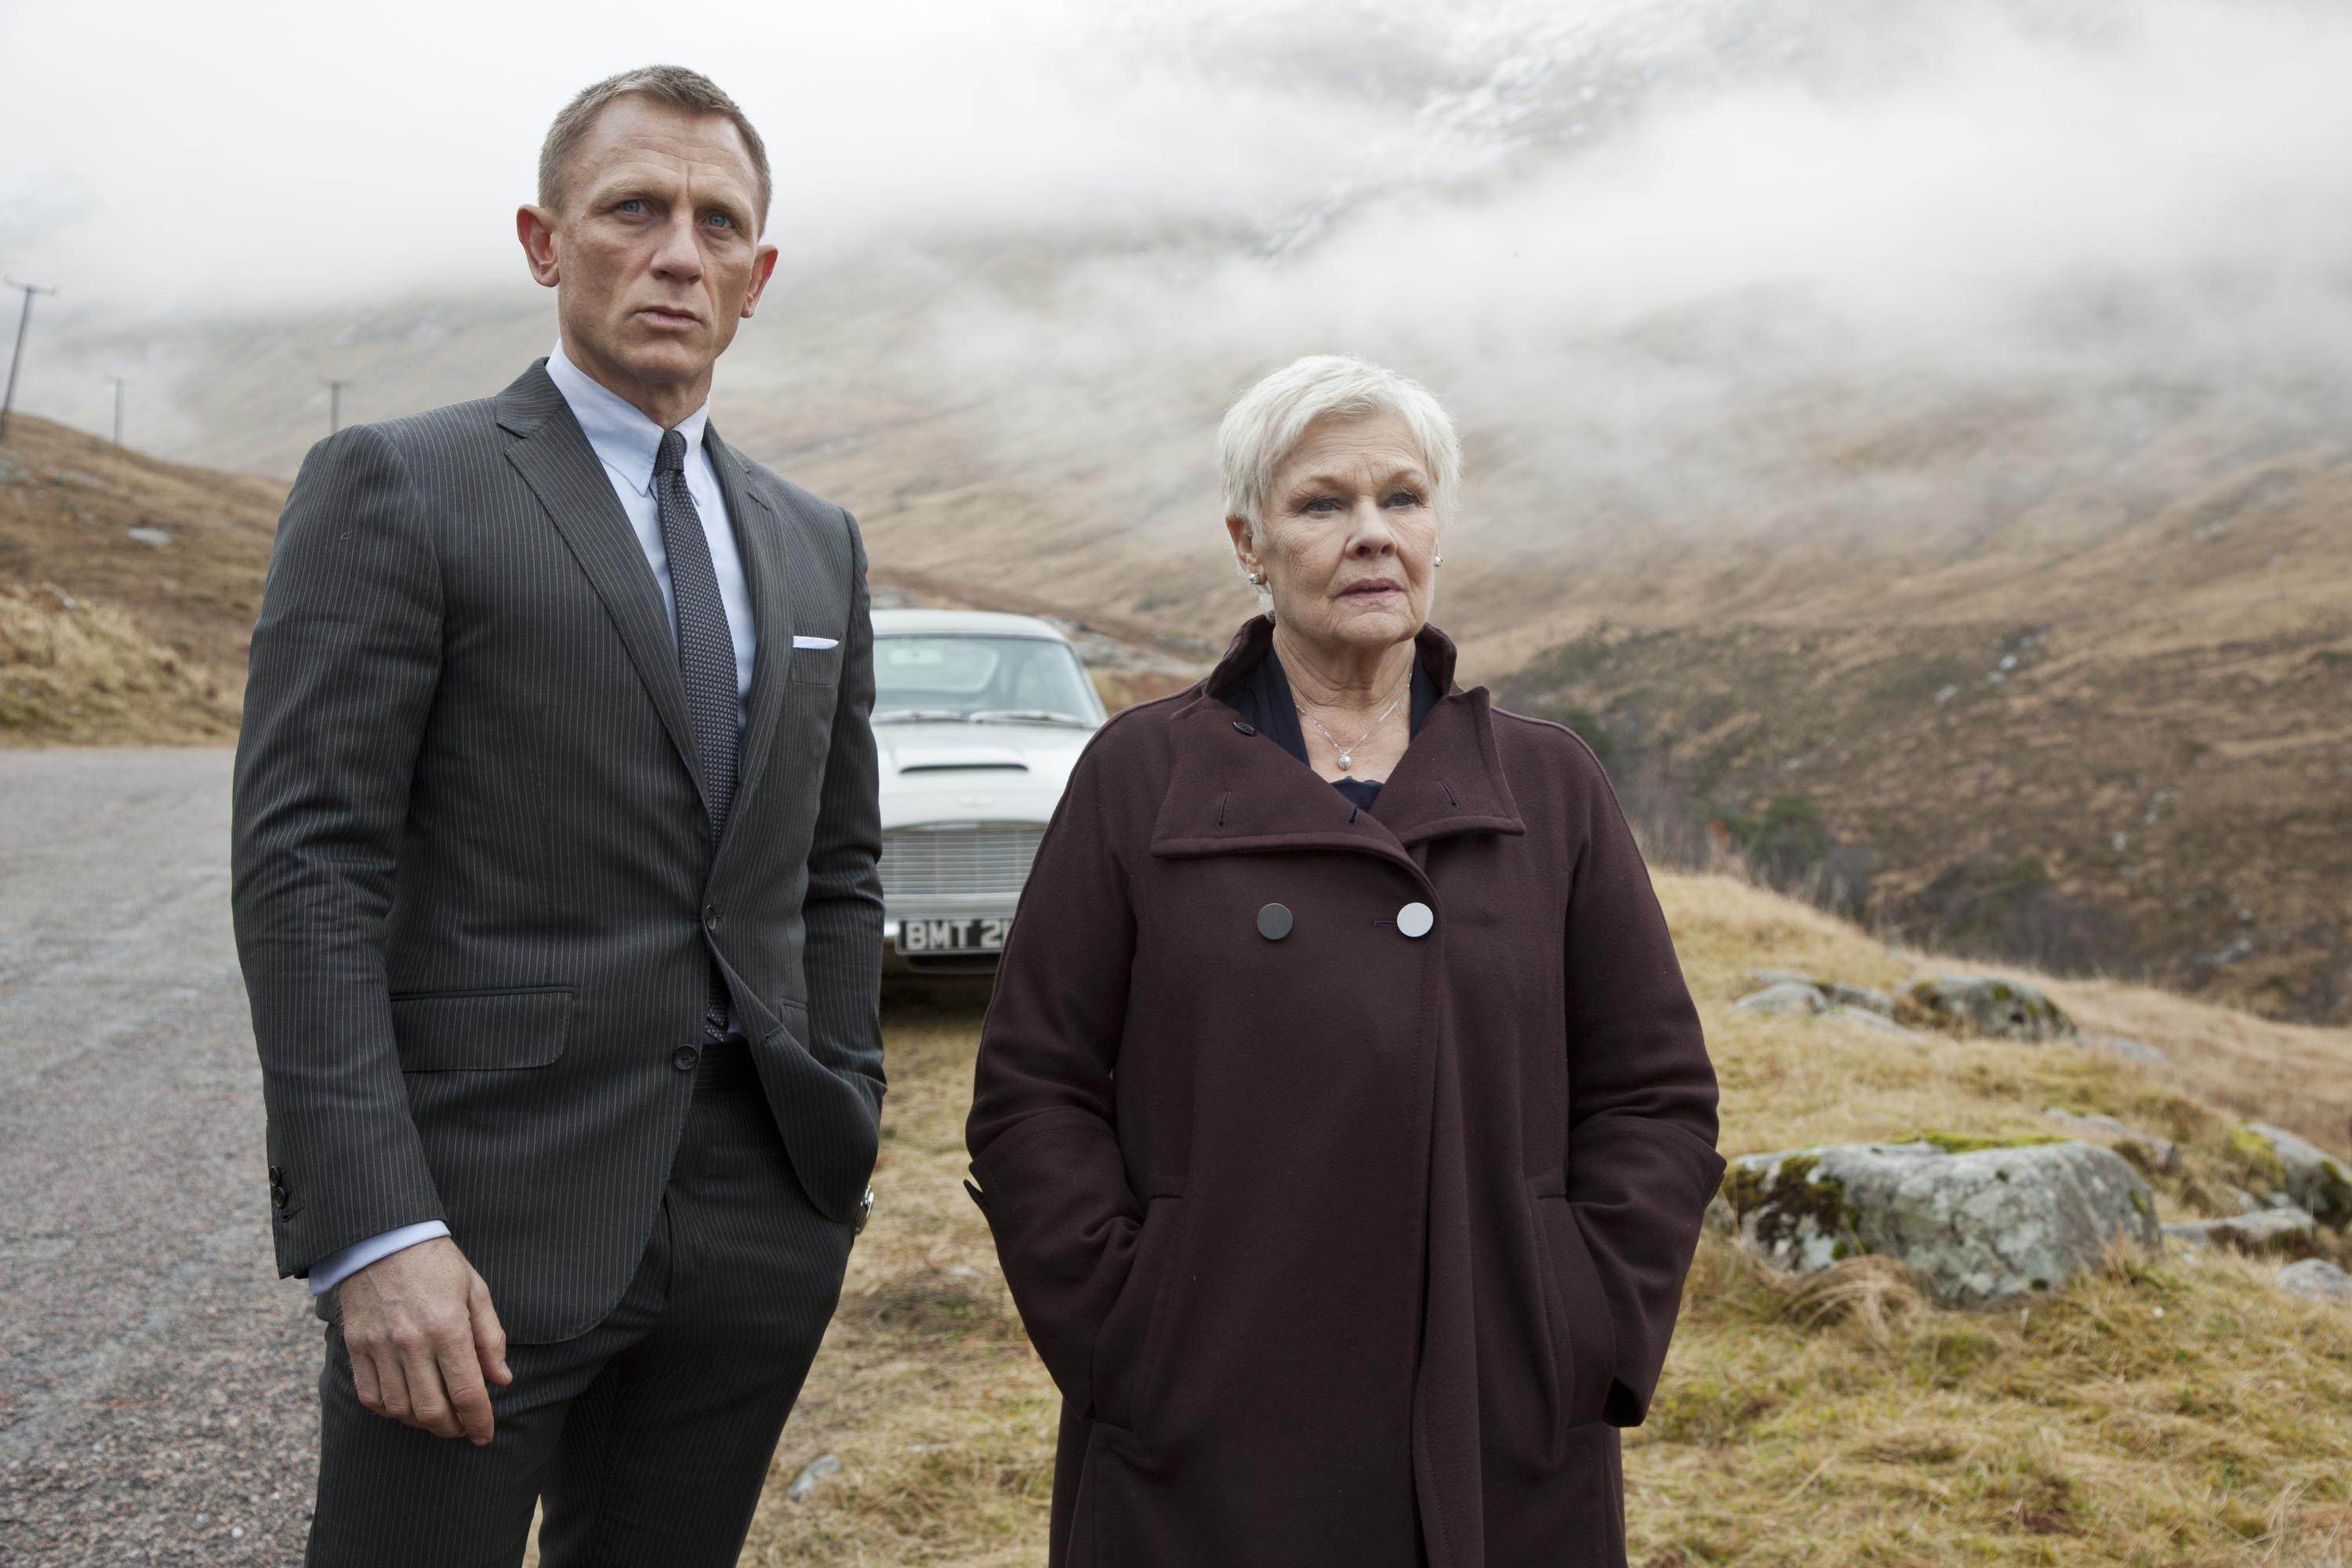 No Merchandising. Editorial Use Only. No Book Cover Usage.Mandatory Credit: Photo by Danjaq/EON Productions/Kobal/REX/Shutterstock (5886236ah) Daniel Craig, (Dame) Judi Dench Skyfall - 2012 Director: Sam Mendes Danjaq / EON Productions UK/USA Scene Still